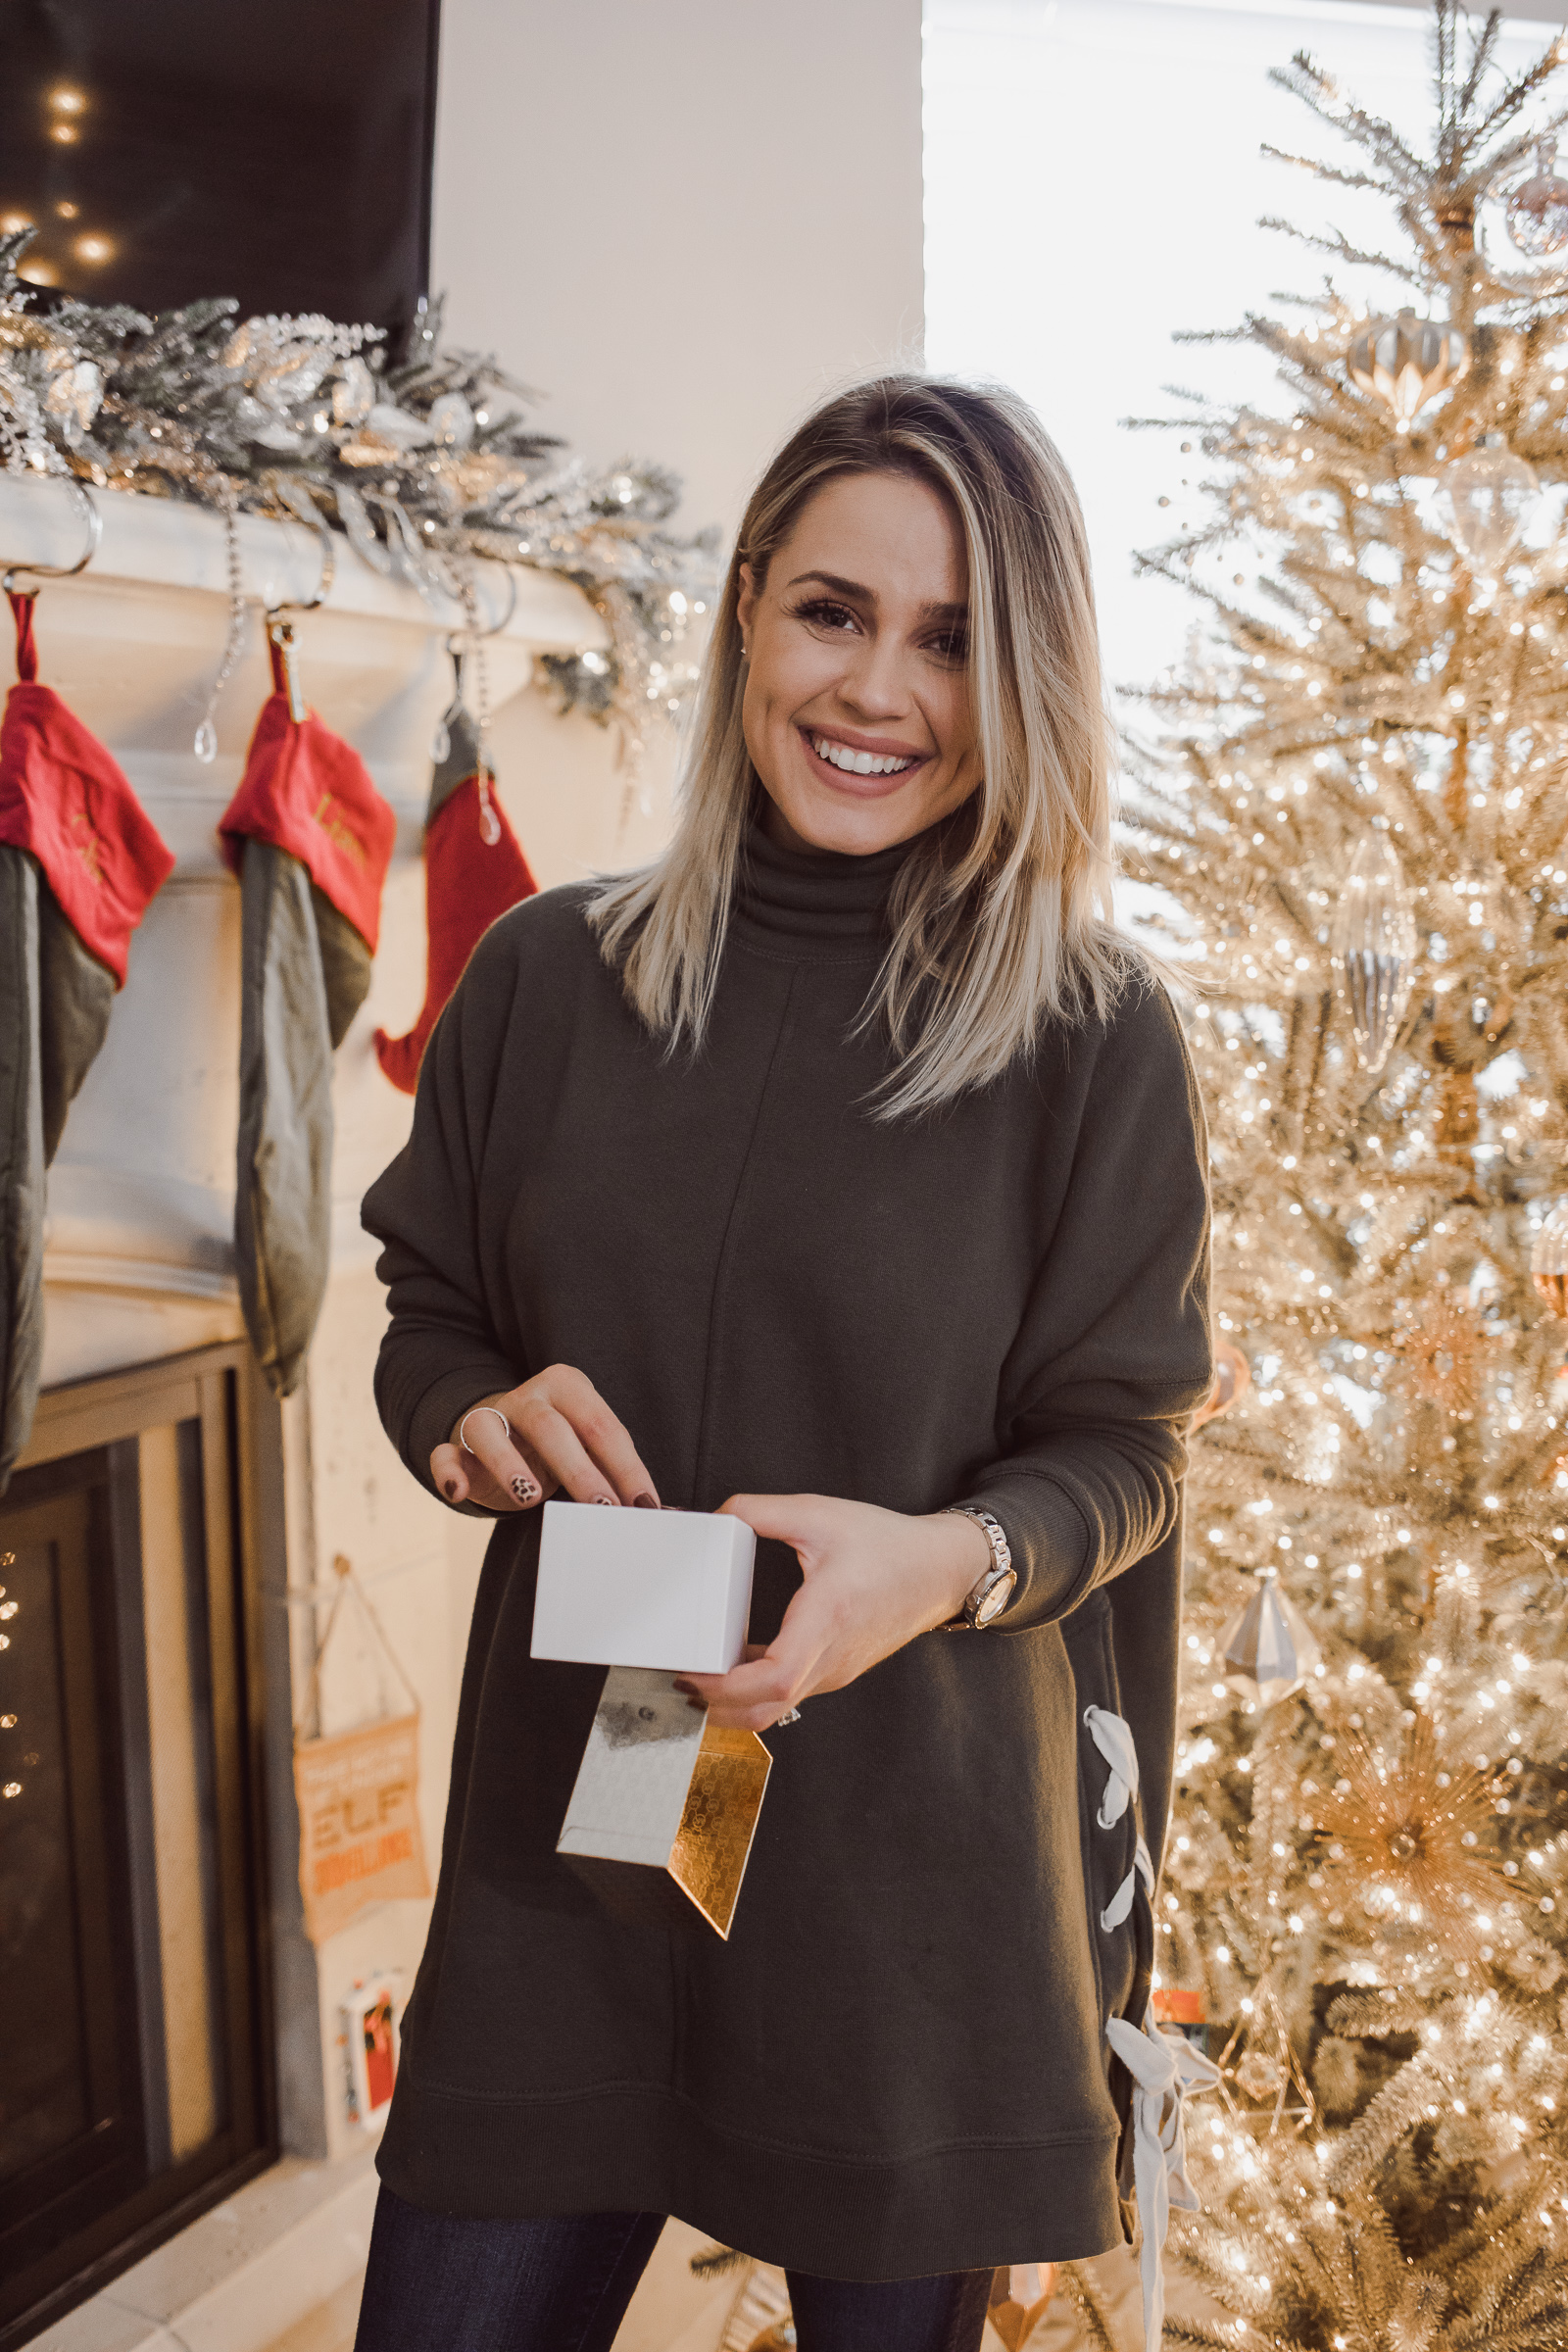 Houston lifestyle blogger Uptown with Elly Brown shares Gift Ideas For Her, and why it's also important to treat yo' self!